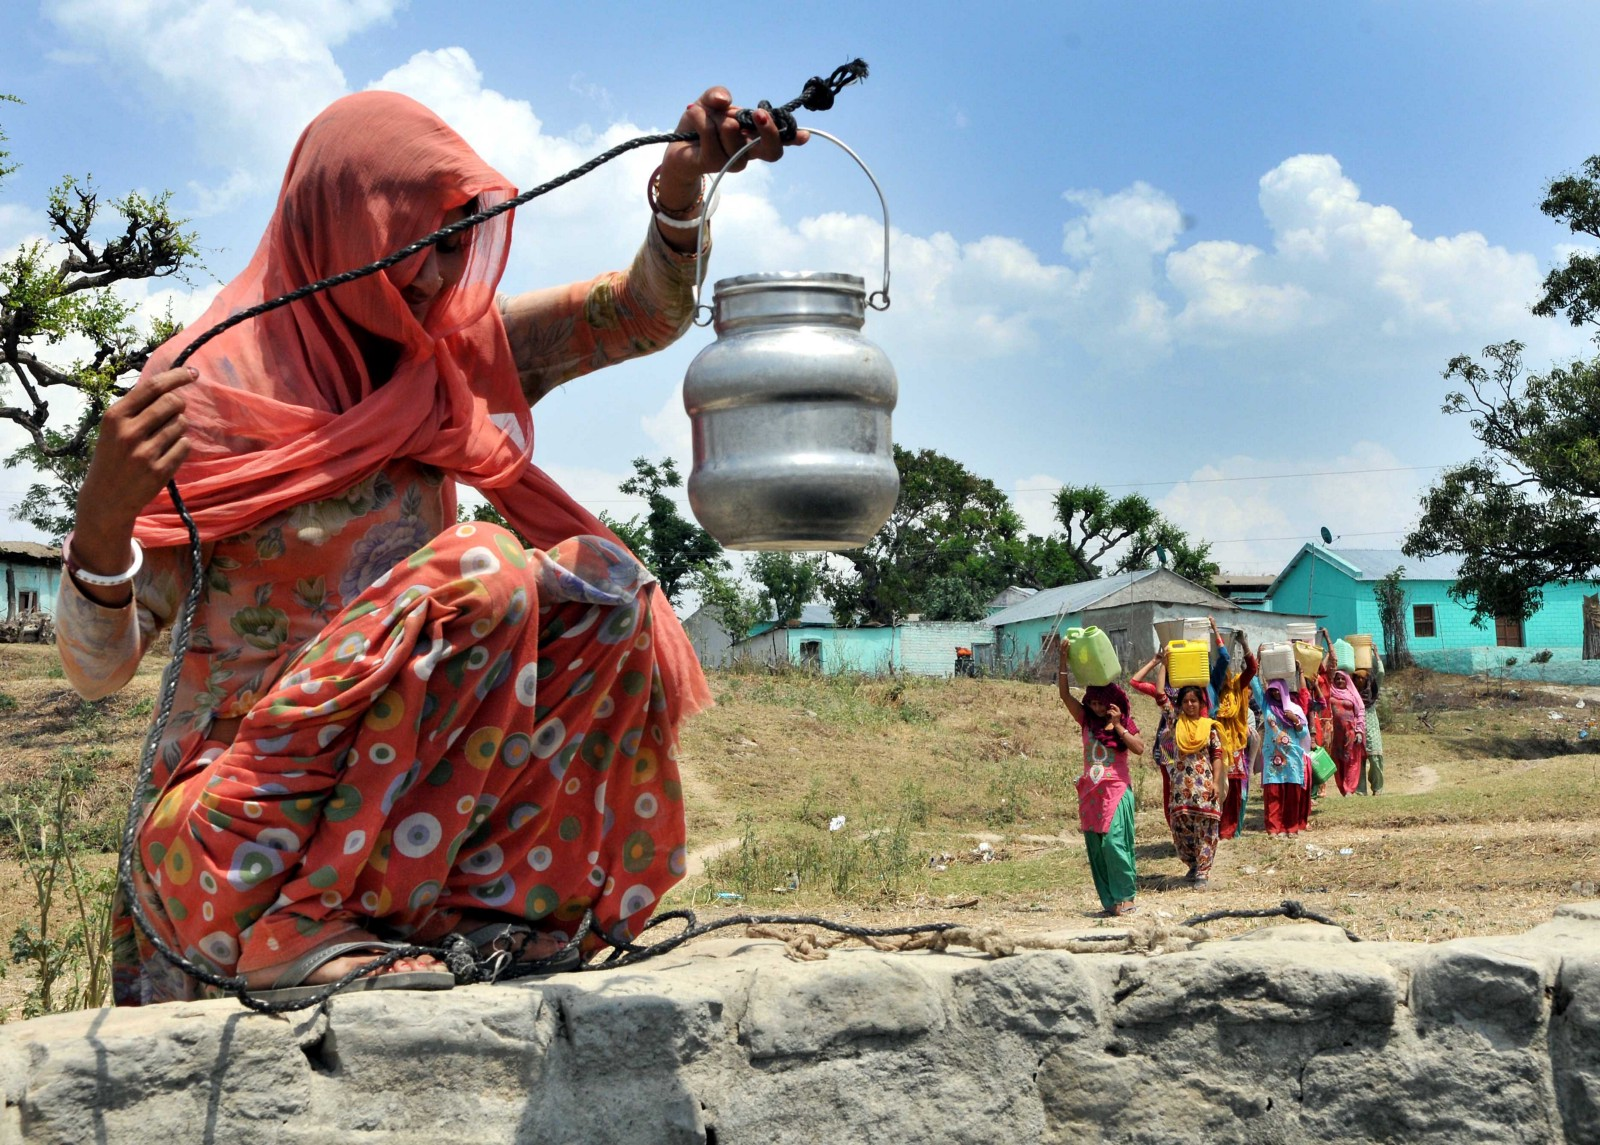 JAMMU, INDIA - APRIL 27: A lady collecting drinking water from an almost dried up well as other coming to collect at Padal village of Samba district, around 40 kilometer from Jammu, on April 27, 2016 in Jammu, India. According to reports, 10 villages in Samba district of Jammu and Kashmir are drought-affected. The drought has been ongoing for the past two months in the region, forcing women and children to walk miles to fetch water. (Photo by Nitin Kanotra/Hindustan Times via Getty Images)